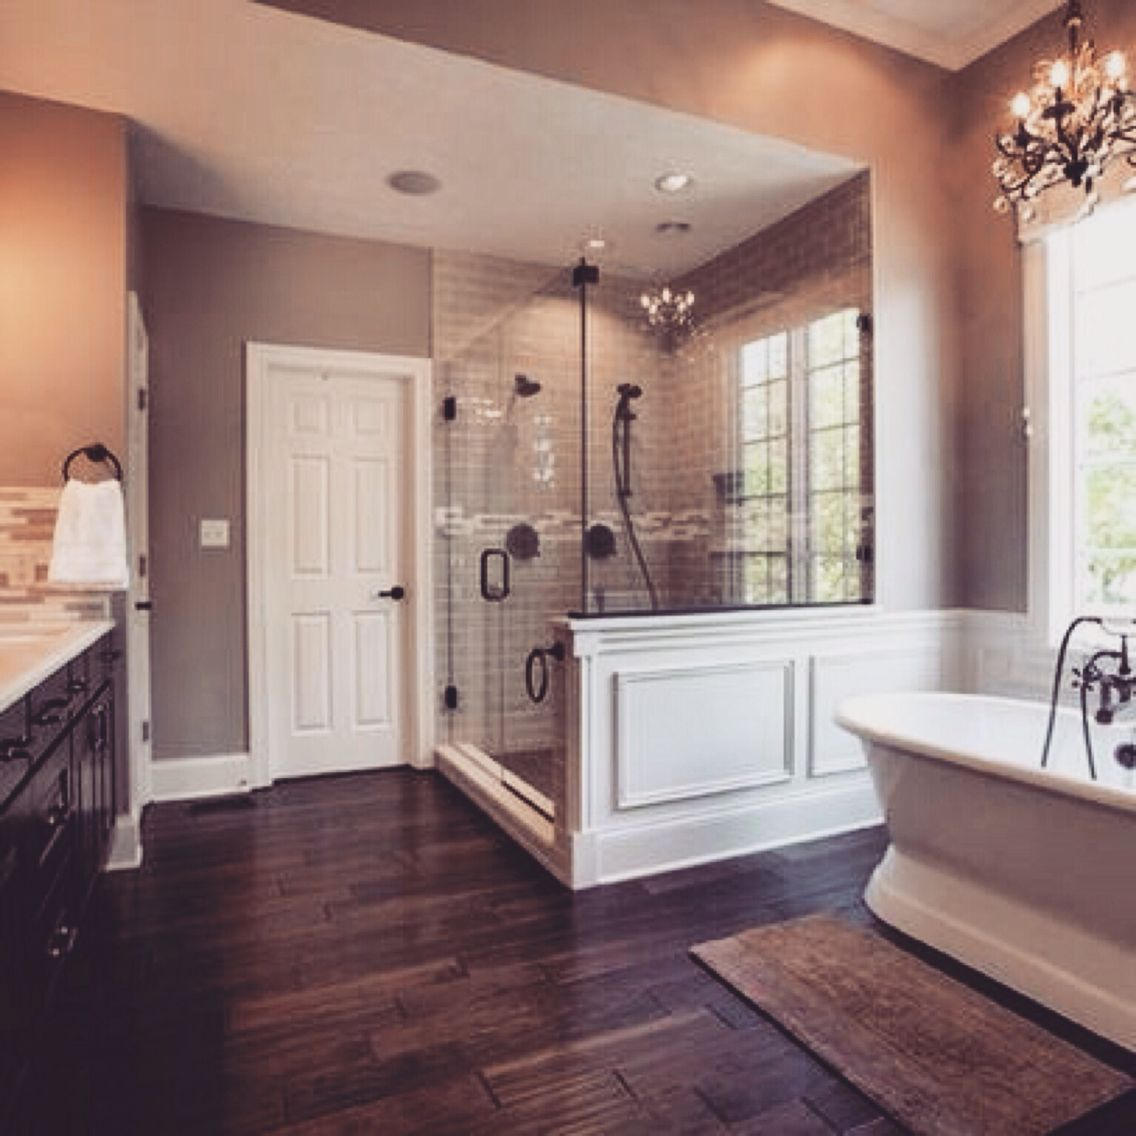 Beautiful Master Bath Love The Hardwood Tiles Gorgeous Shower And Freestanding Tub Home